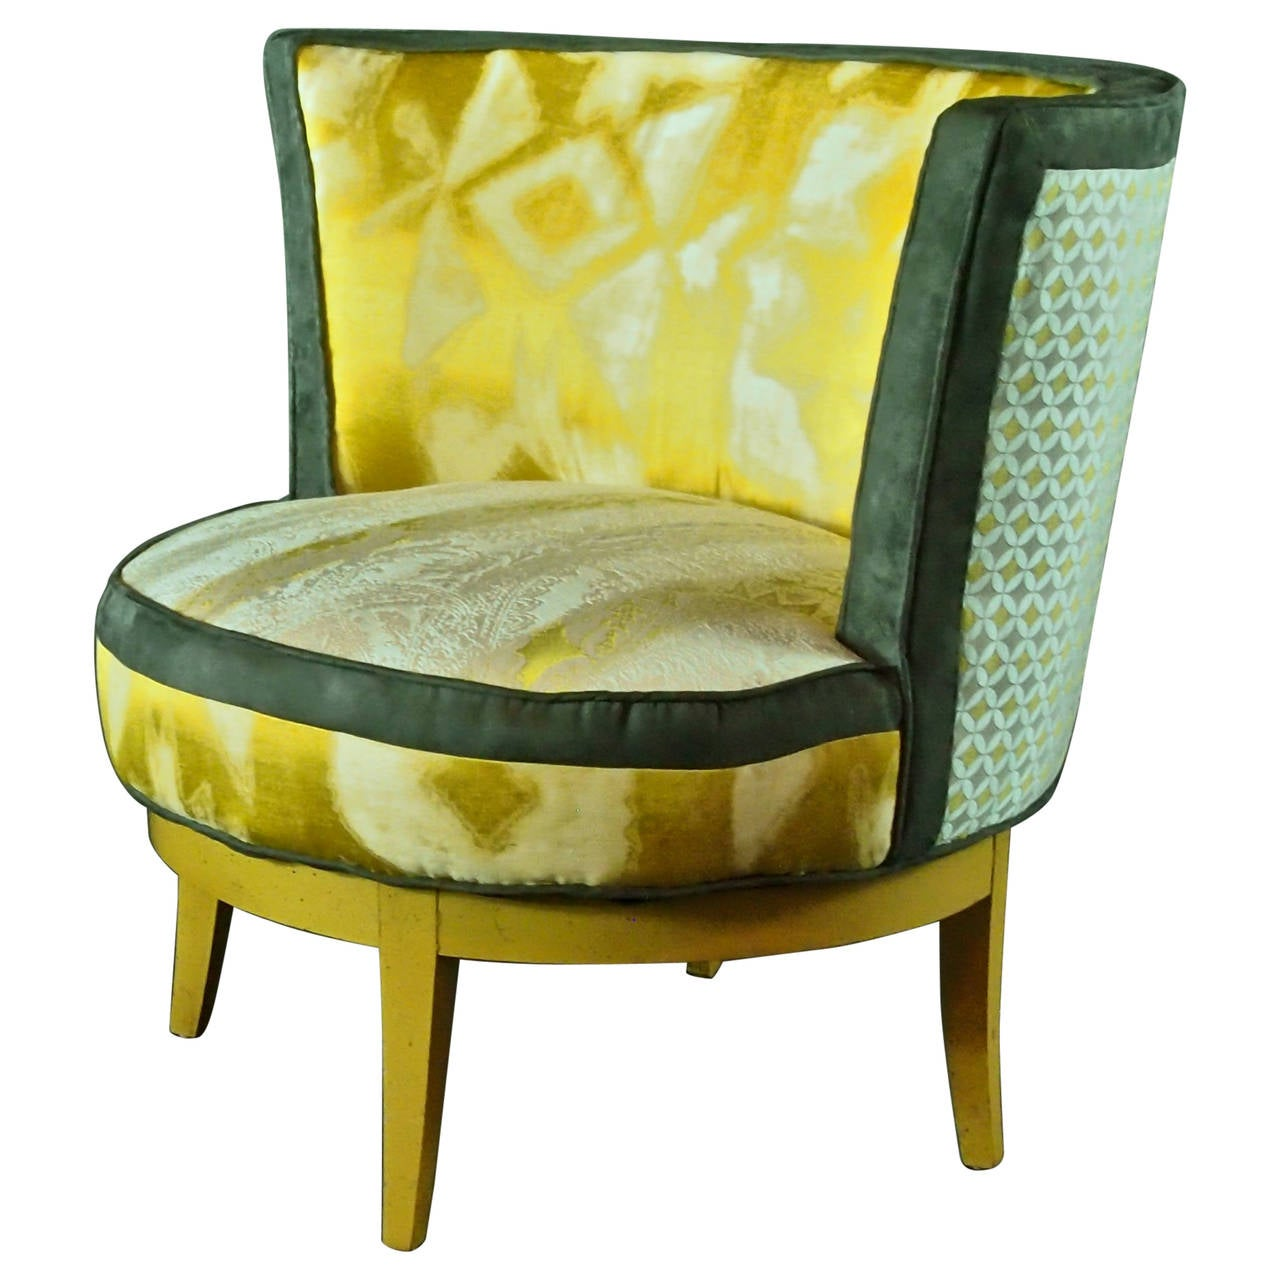 A Shapely Swivel Seat Inspired By Mid Century Design Our: Mid-Century Barrel Chair With Swivel Base In Yellow, Gray